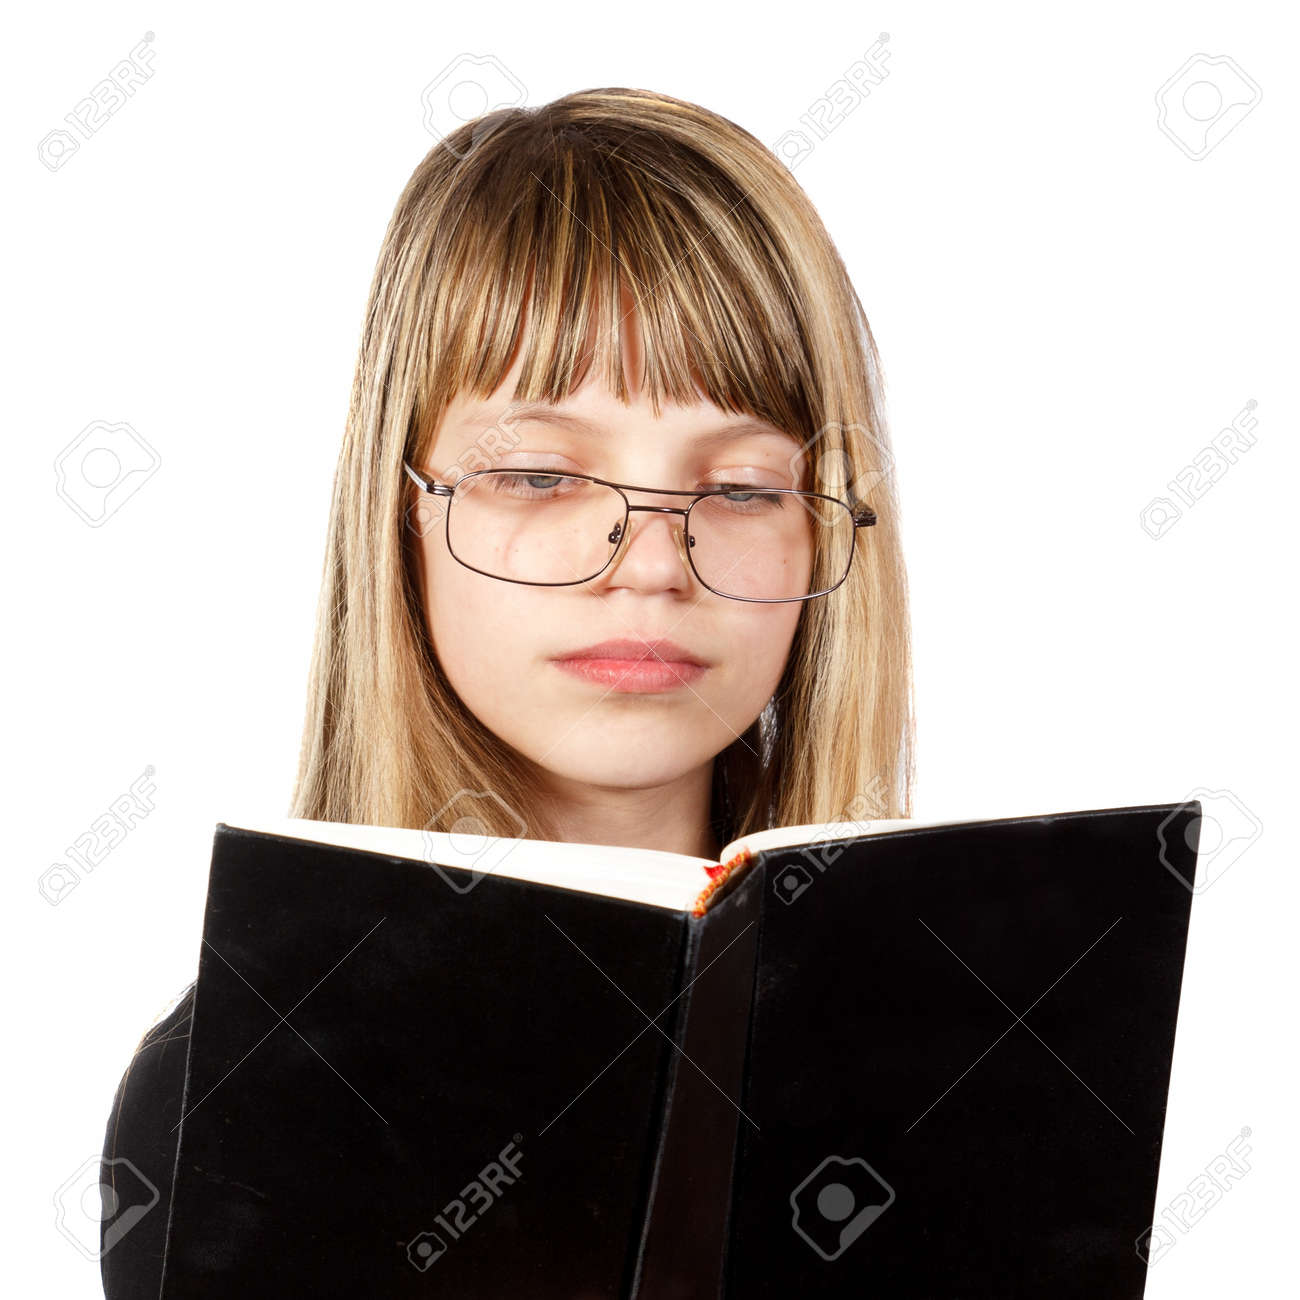 1cee1d28272a teenage girl with big glasses reading a black book against white background  Stock Photo - 17109366